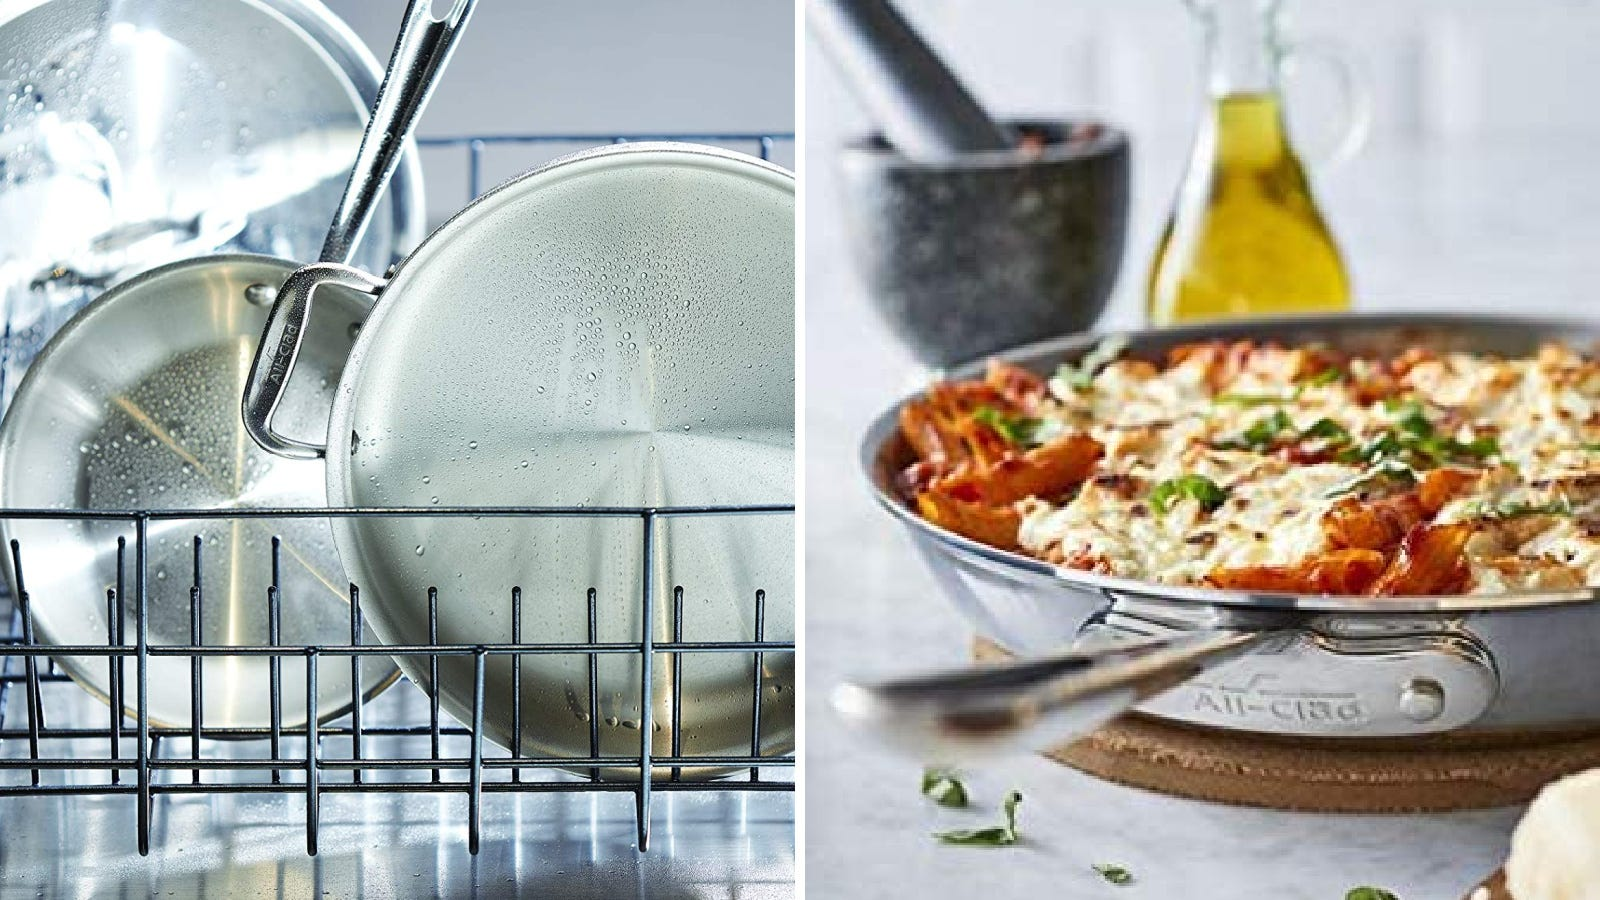 Two images featuring the All-Clad stainless steel skillets.